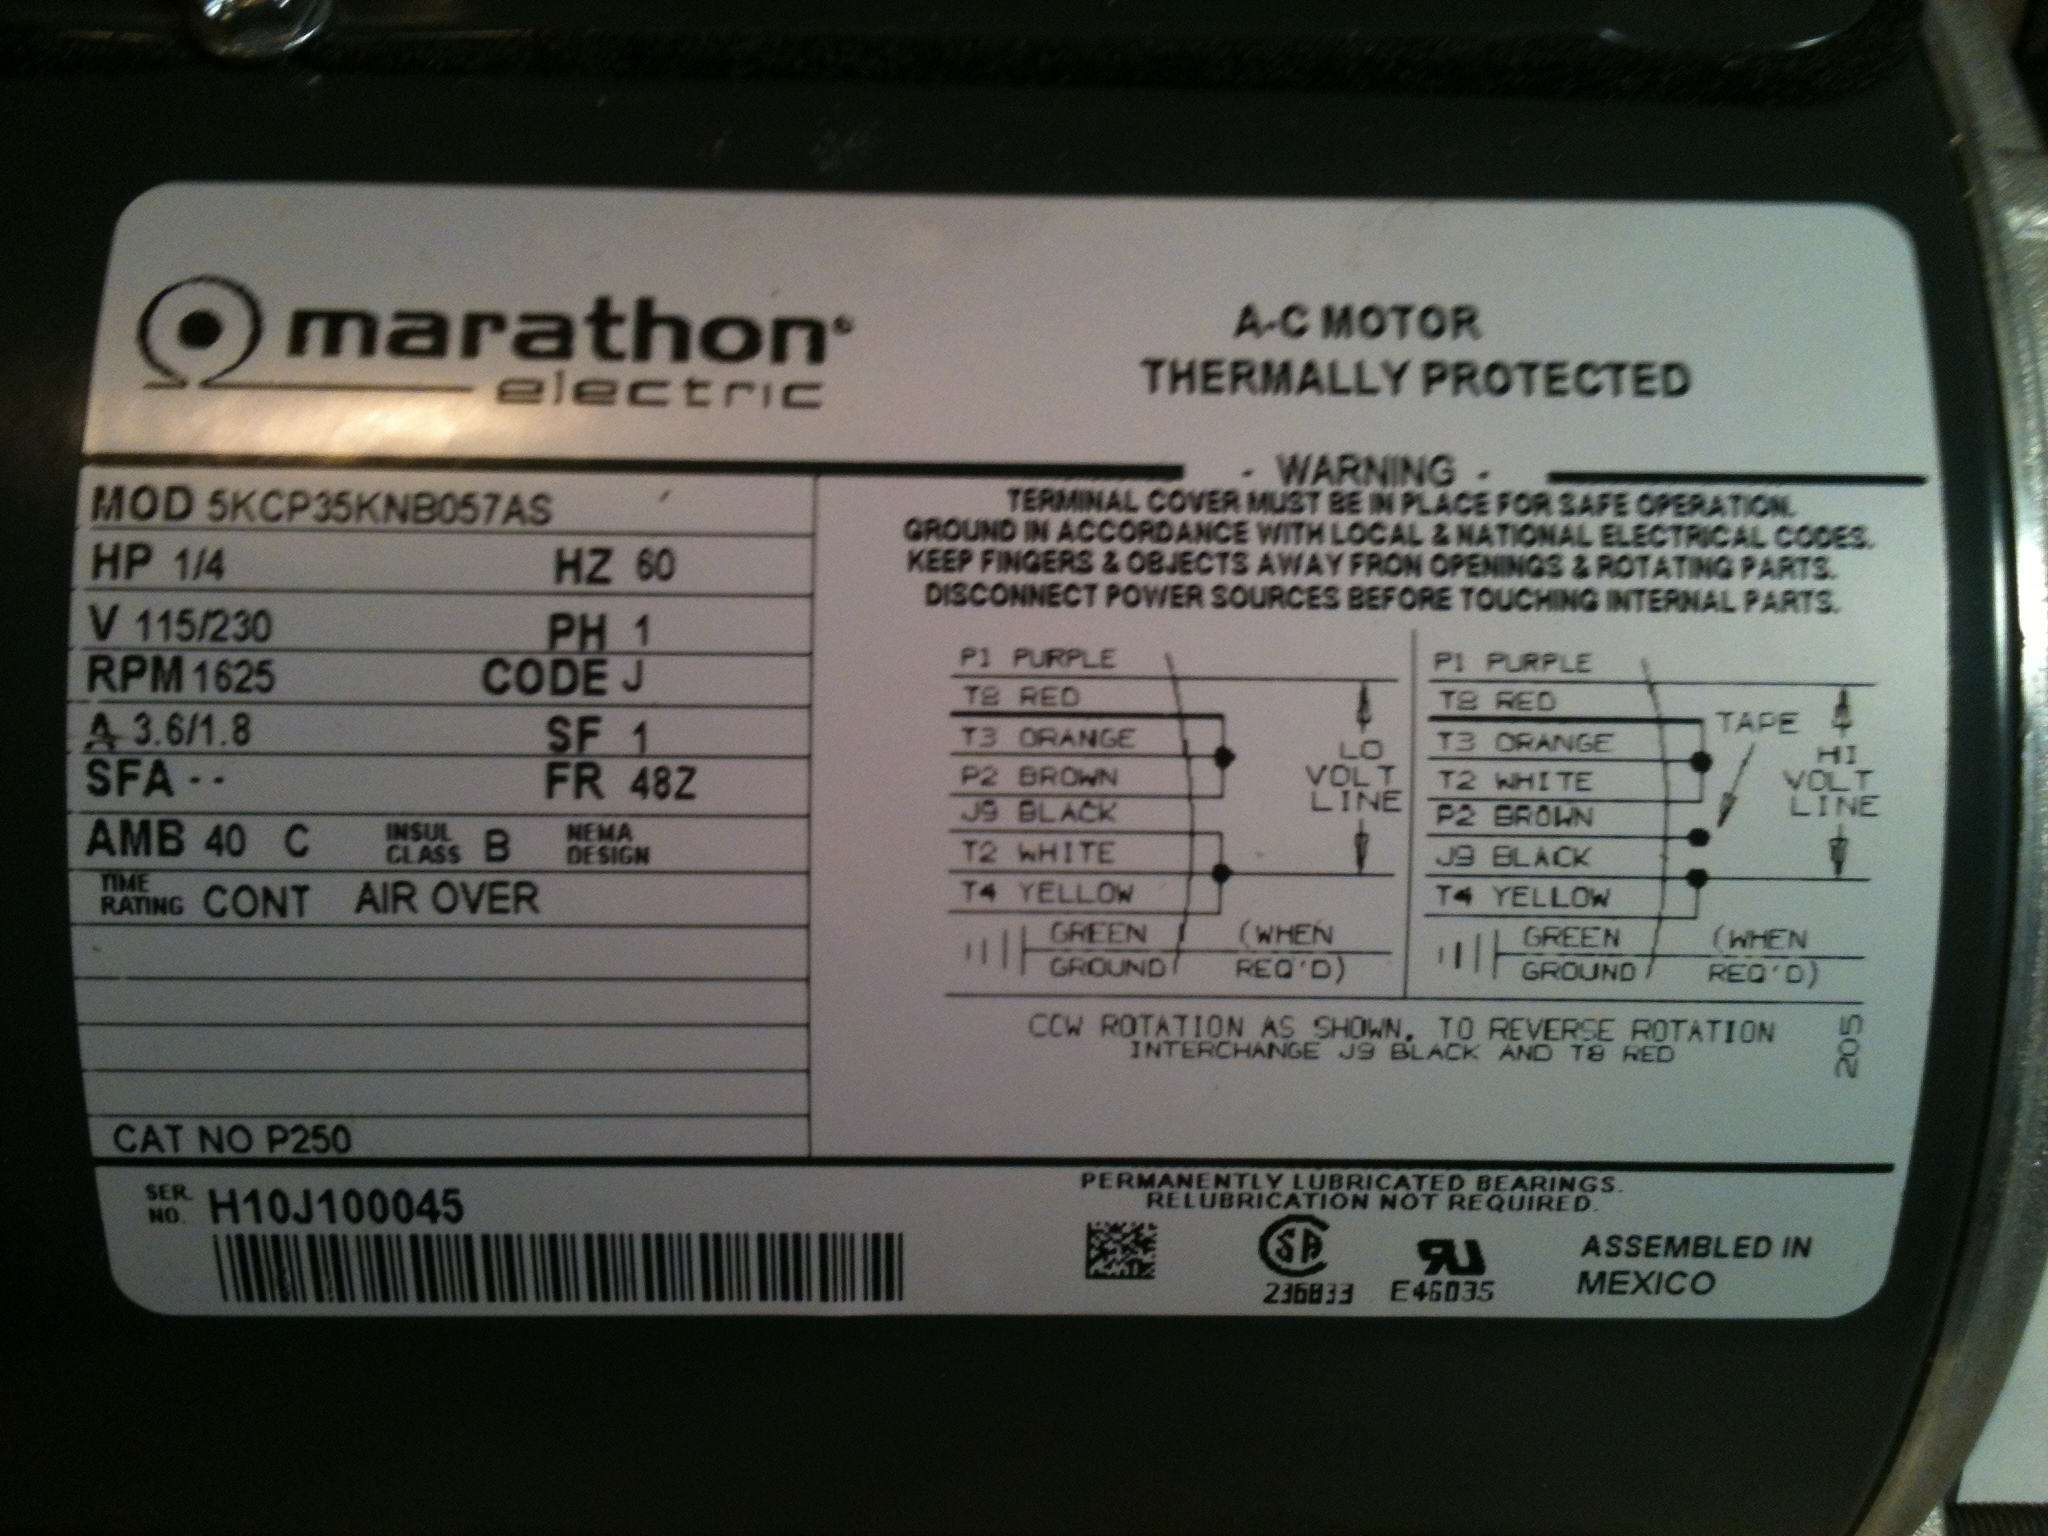 Marathon Motor Wiring Diagram: hi  i just bought a Marathon Electric AC motor  HP  1 4 V 115 230,